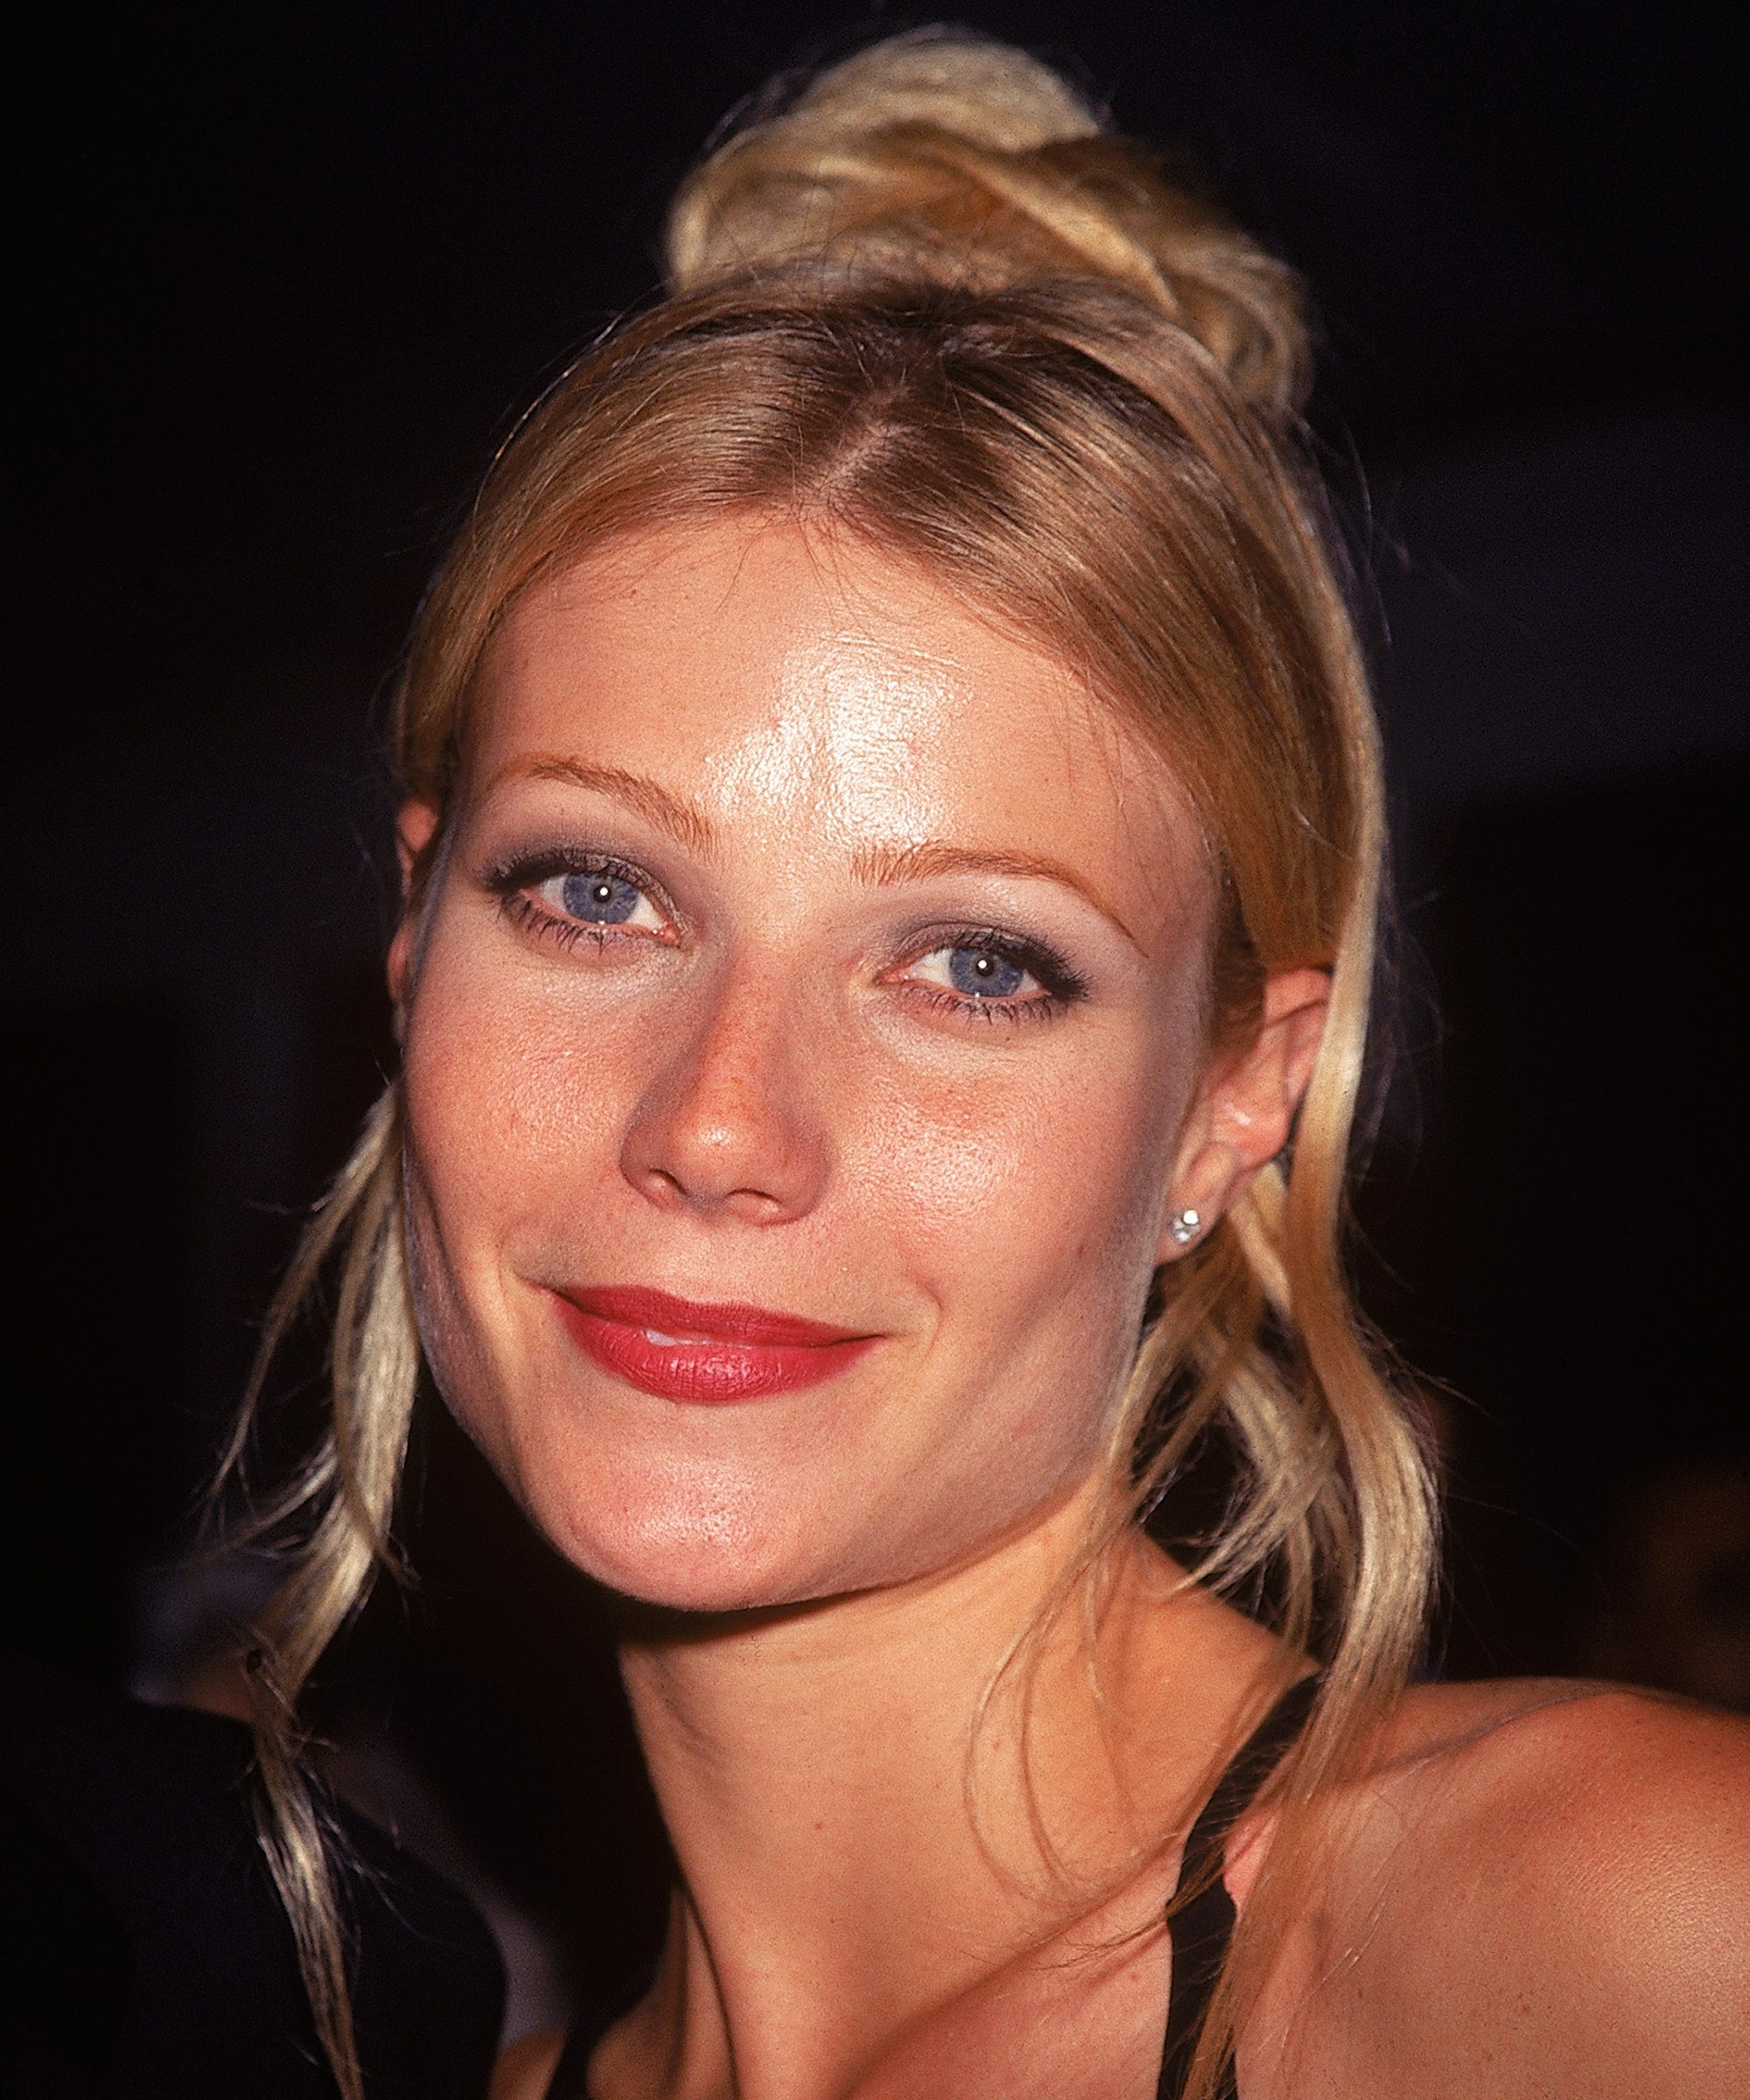 Gwyneth Paltrow - 90s Best Looks Style File Gwyneth Paltrow